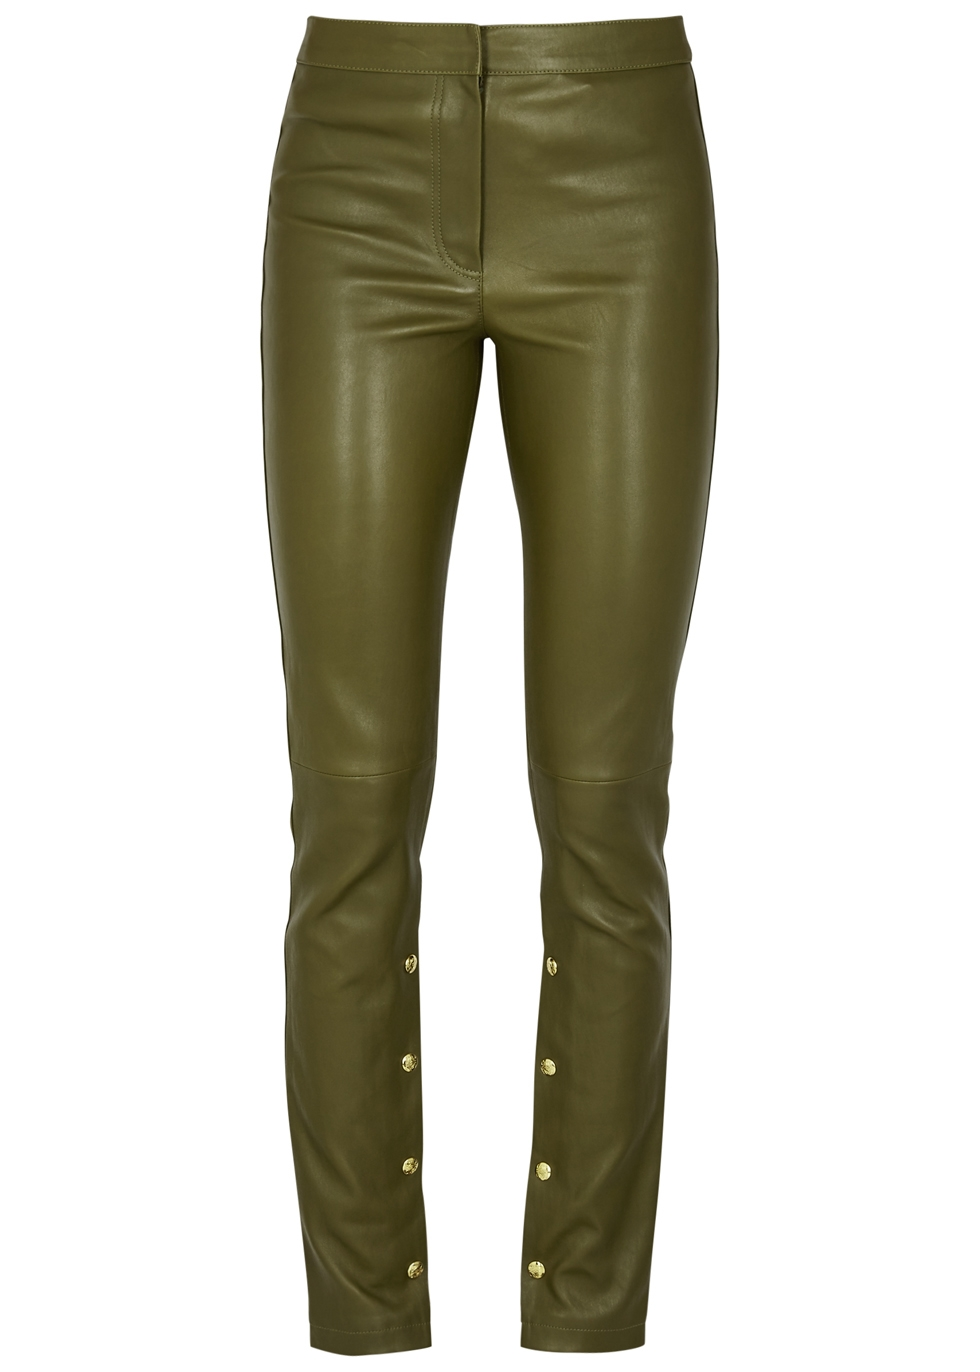 OLIVE SKINNY LEATHER TROUSERS